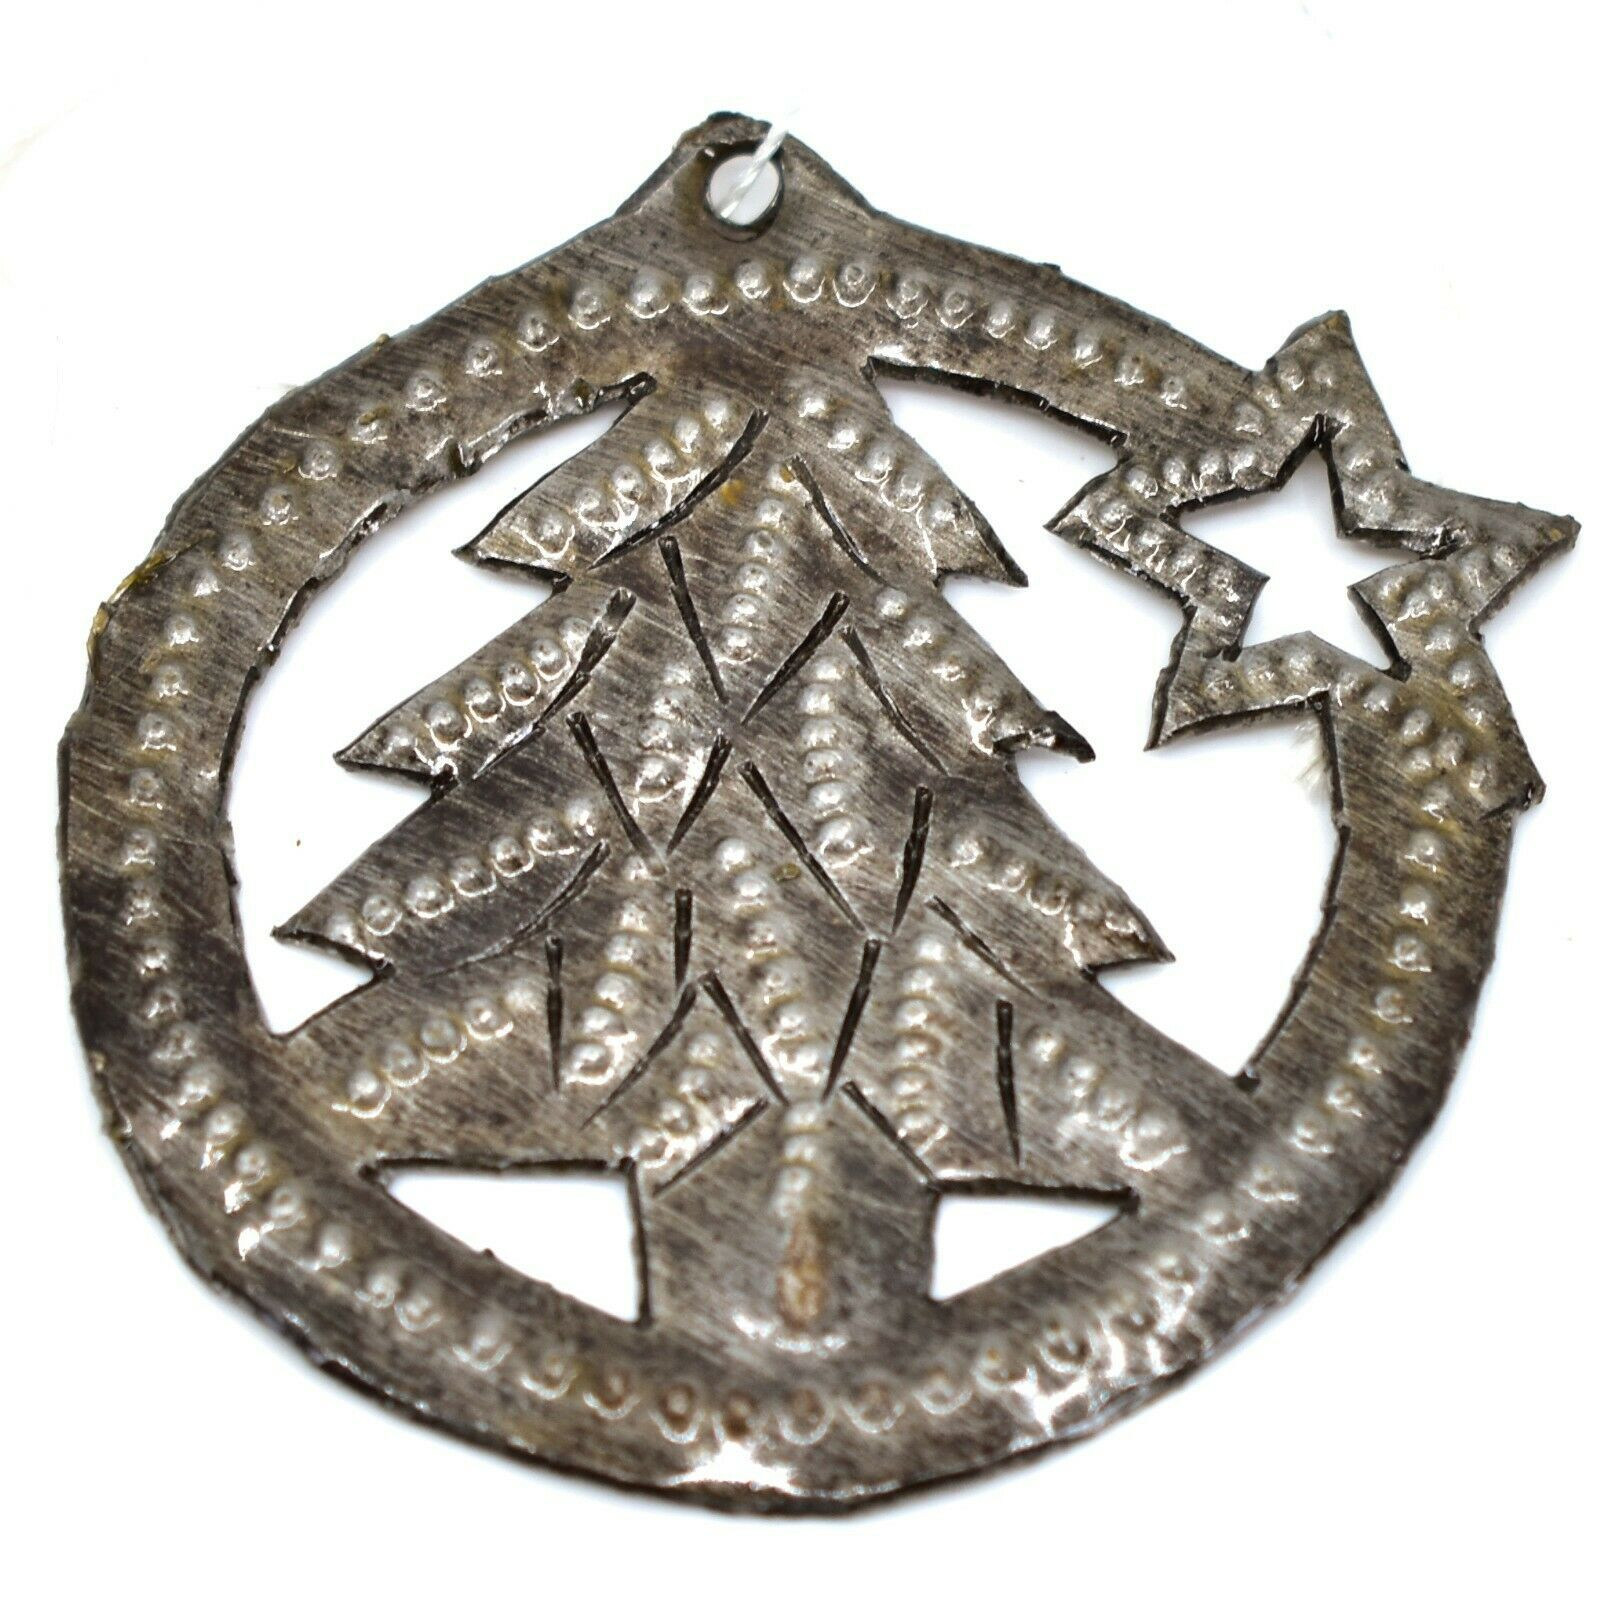 Croix Des Bouquets Christmas Tree with Star Design Holiday Ornament Made Haiti